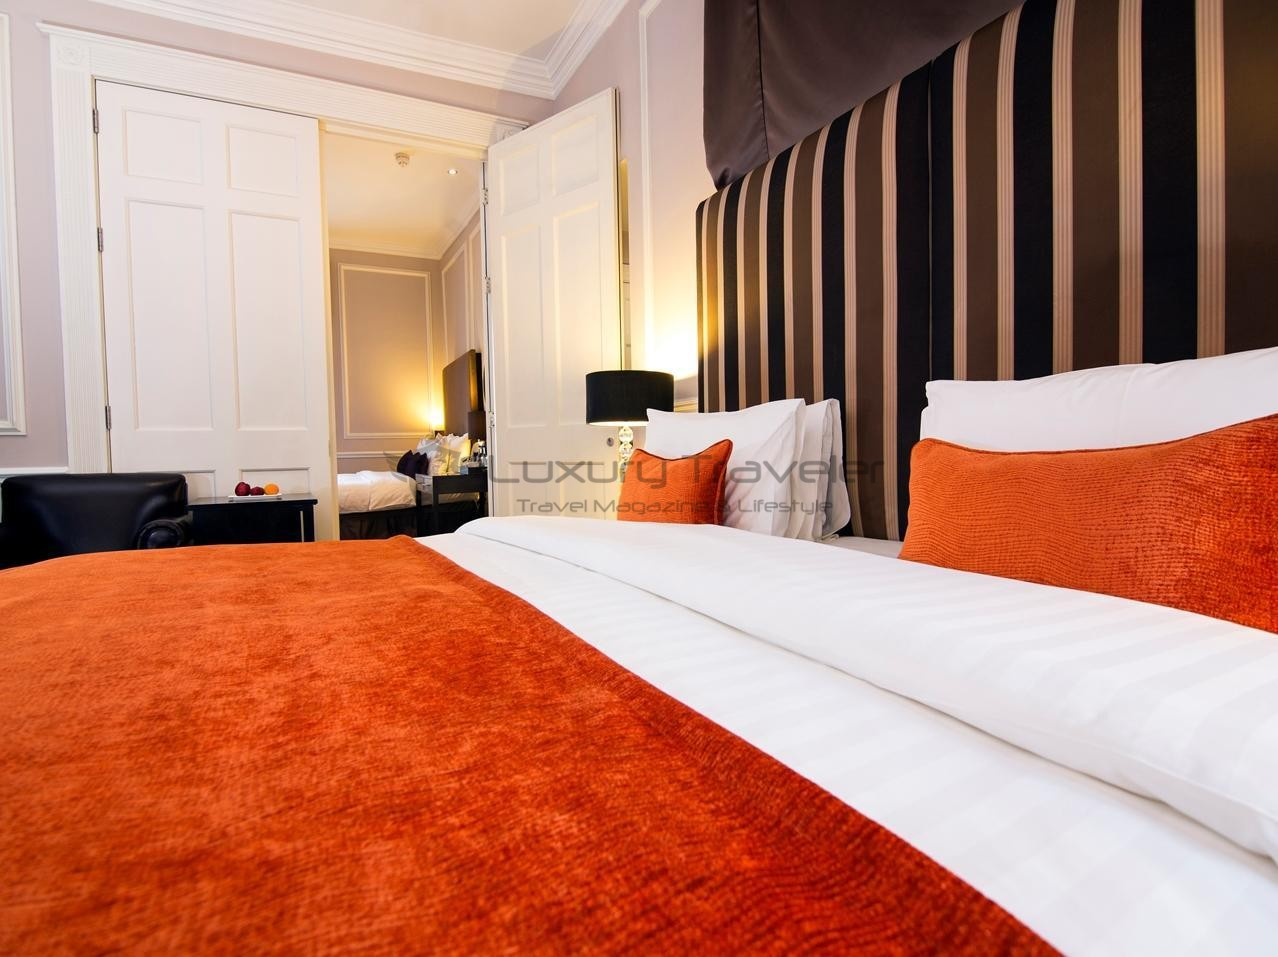 Montagu_Place_Hotel_London_Swanky_Luxury